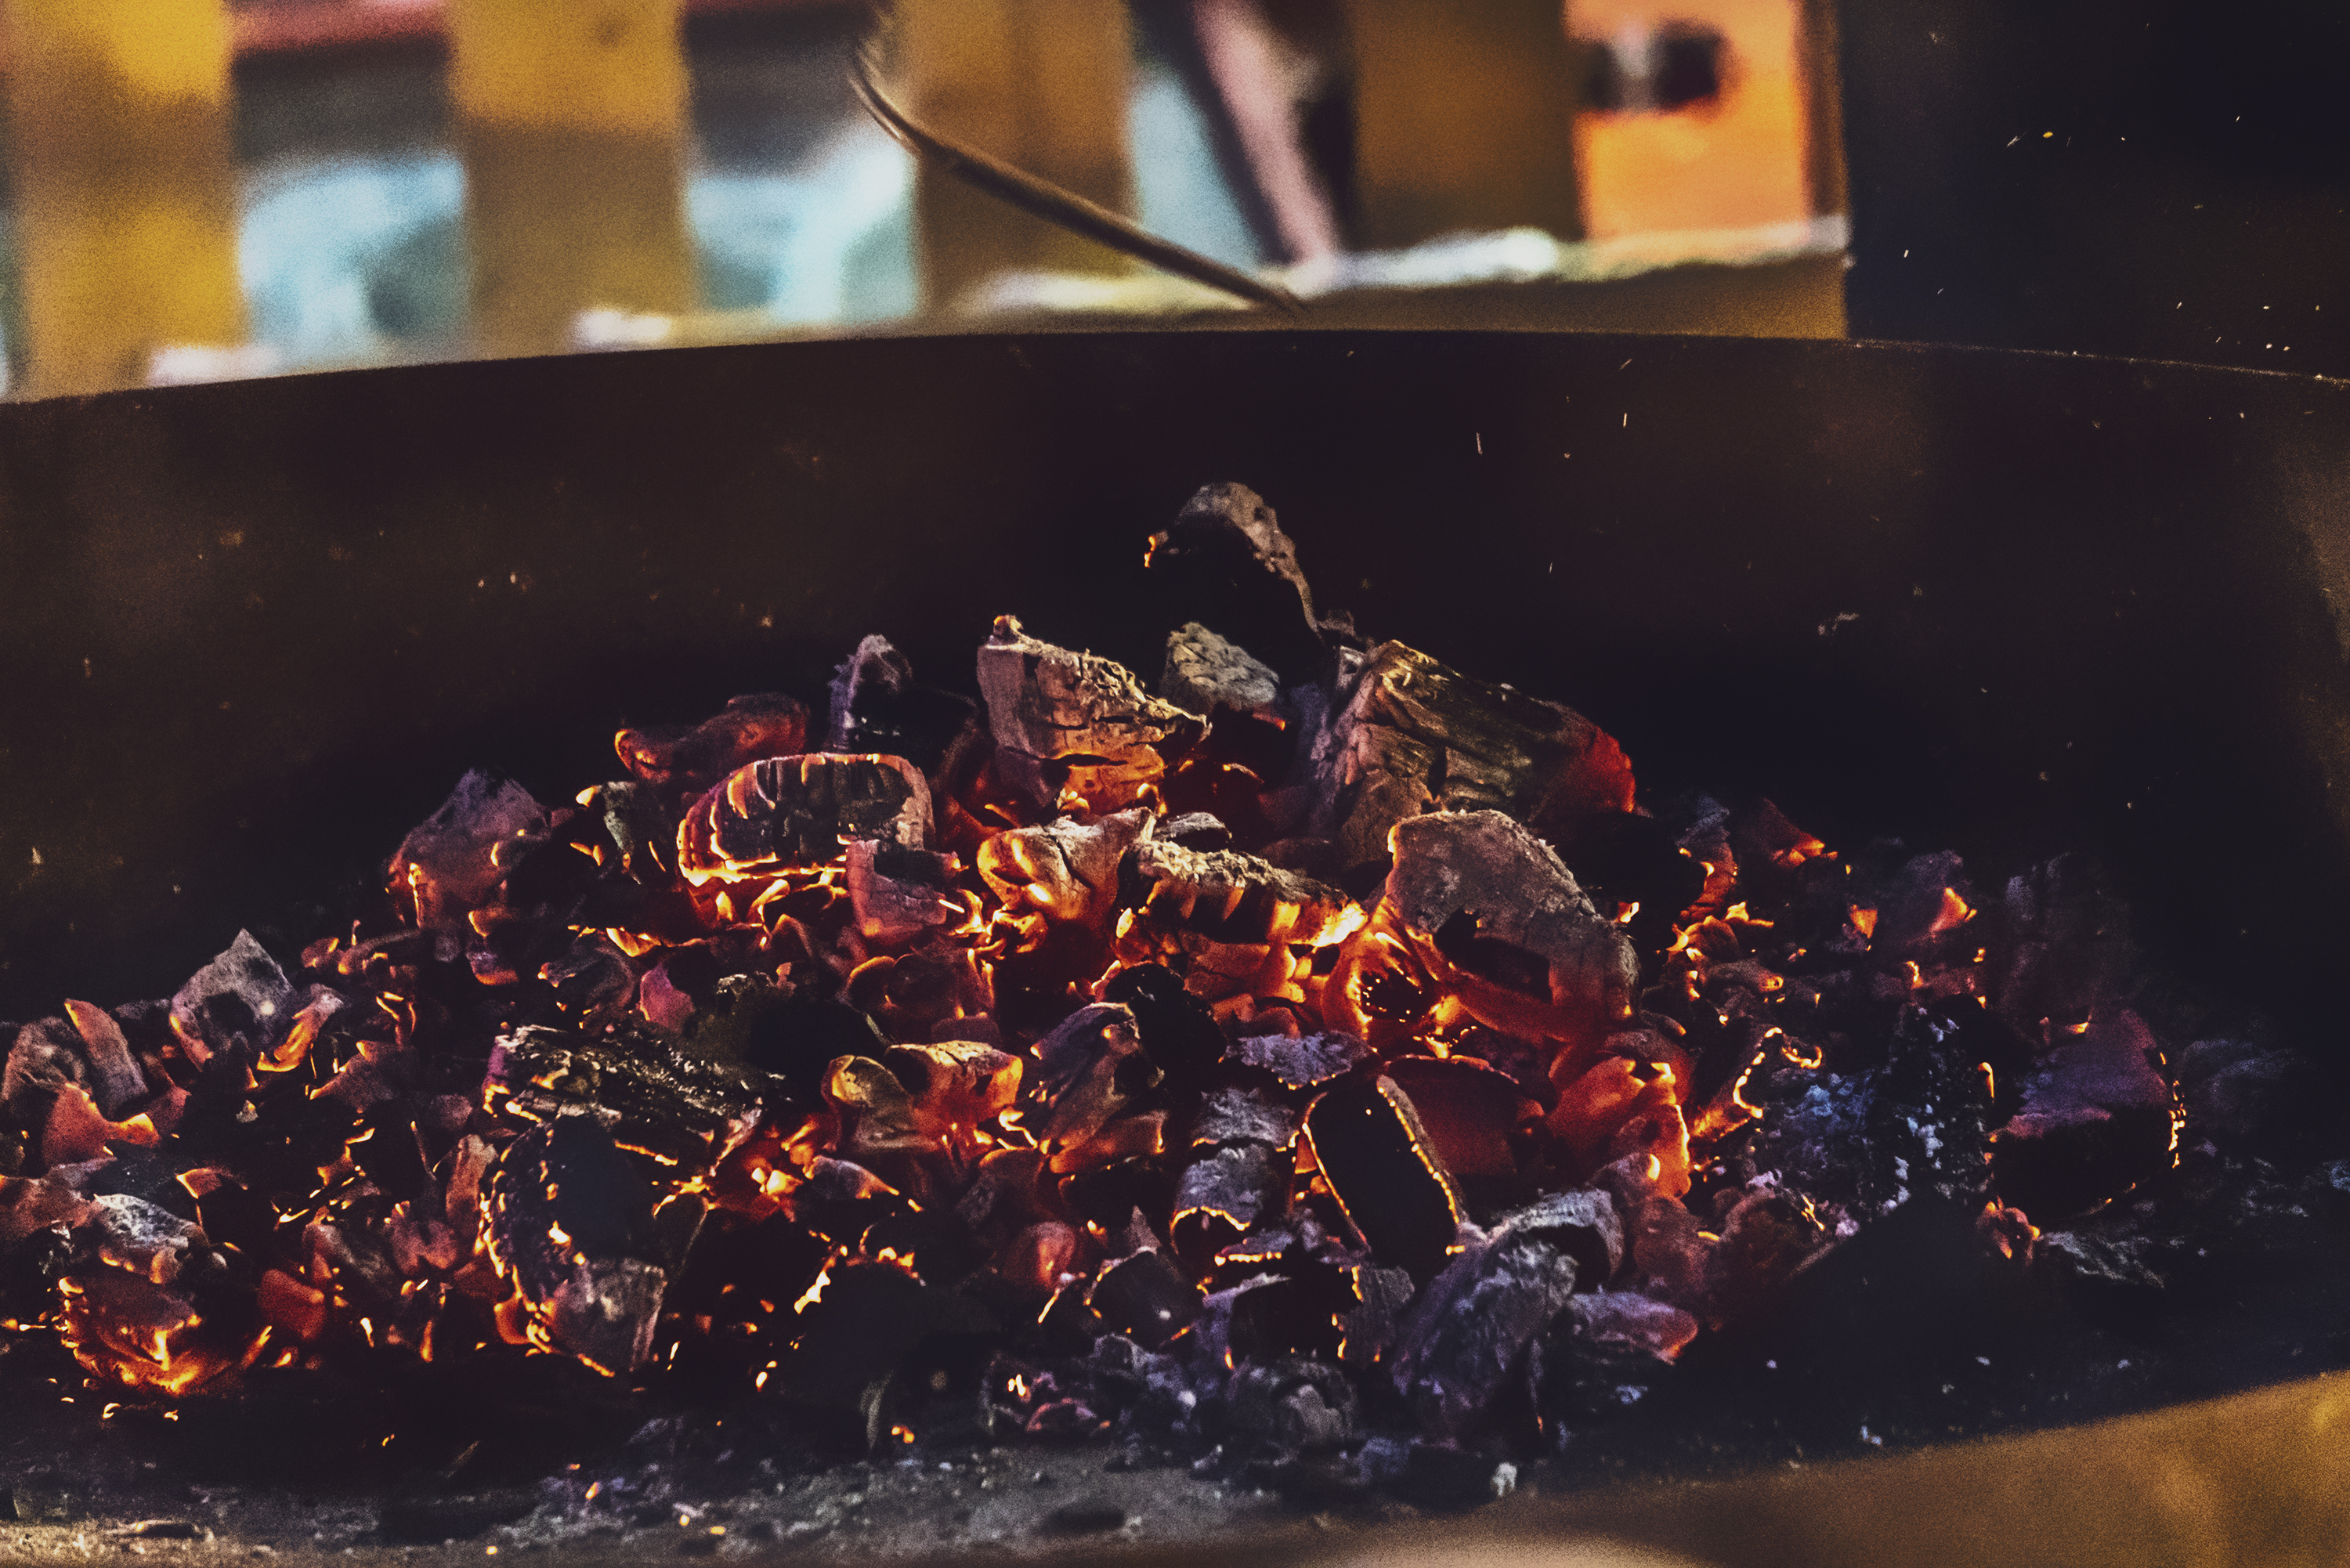 How to Extinguish a Charcoal Grill | Home Guides | SF Gate